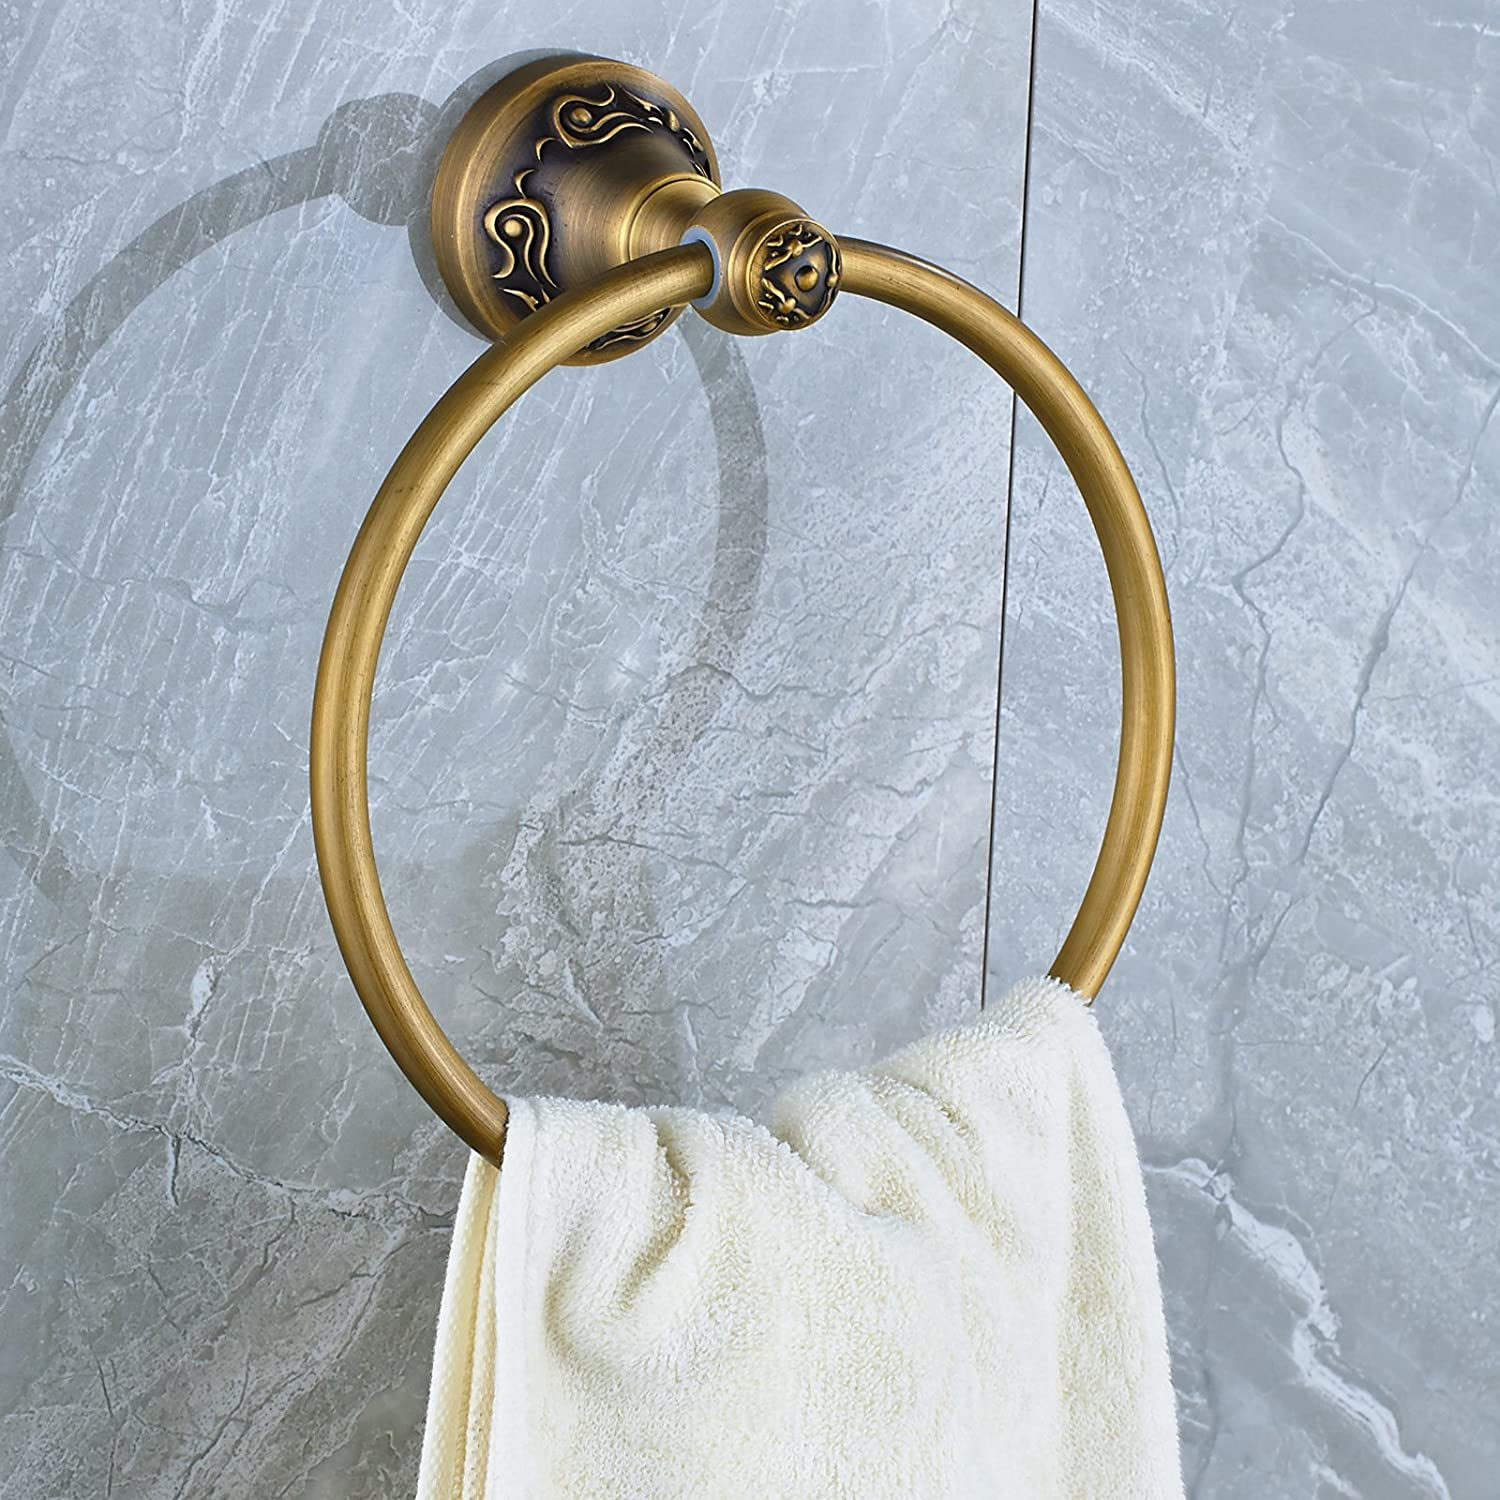 Senlesen Oil Rubbed Bronze Round Bath Towel Ring Bathroom Towel Rack ...